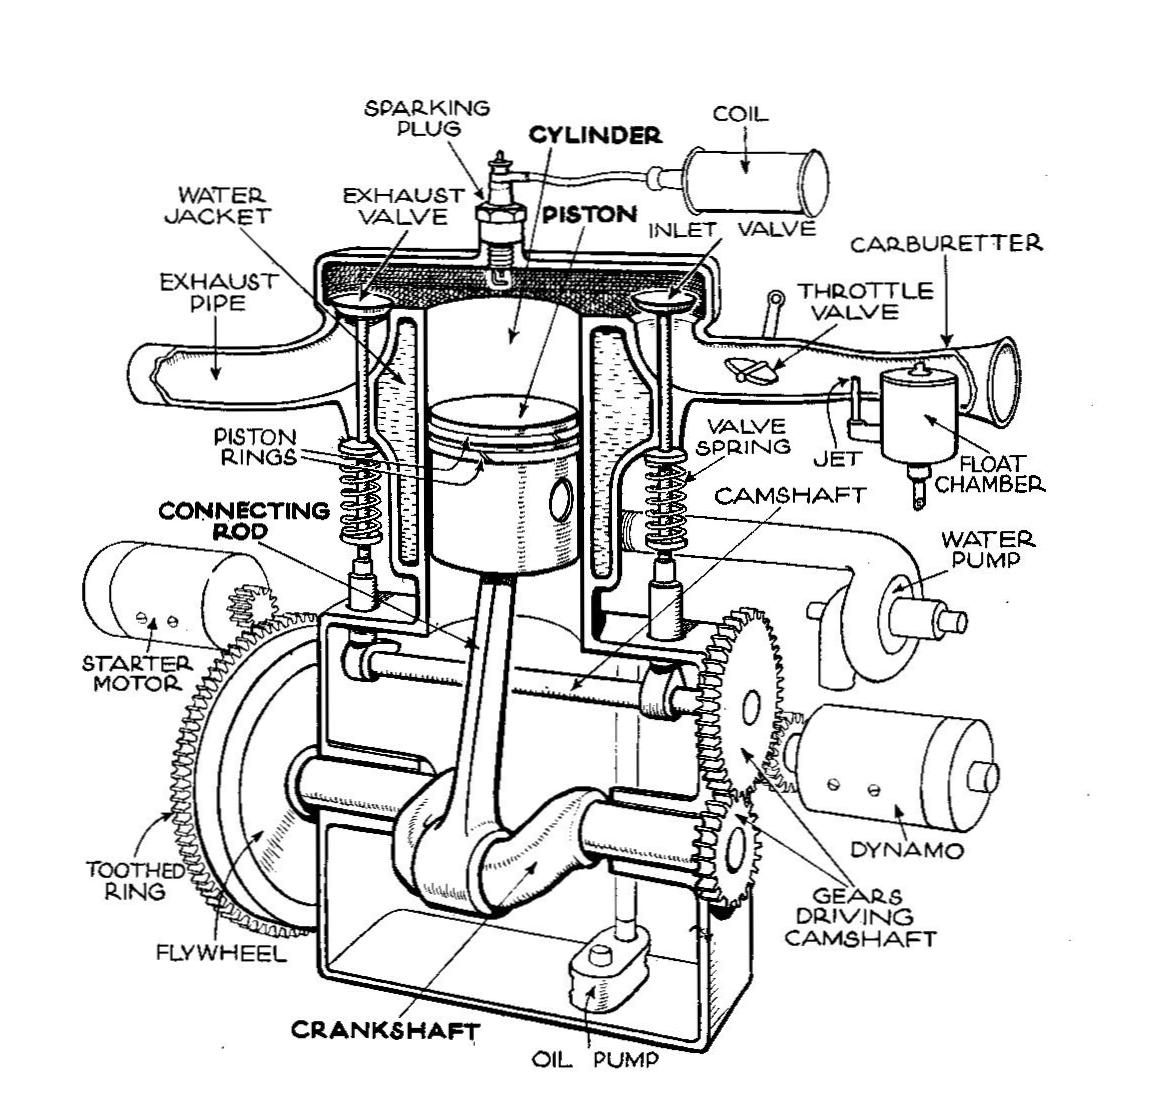 flathead engine wikipedia Motorcycle Motor Diagram